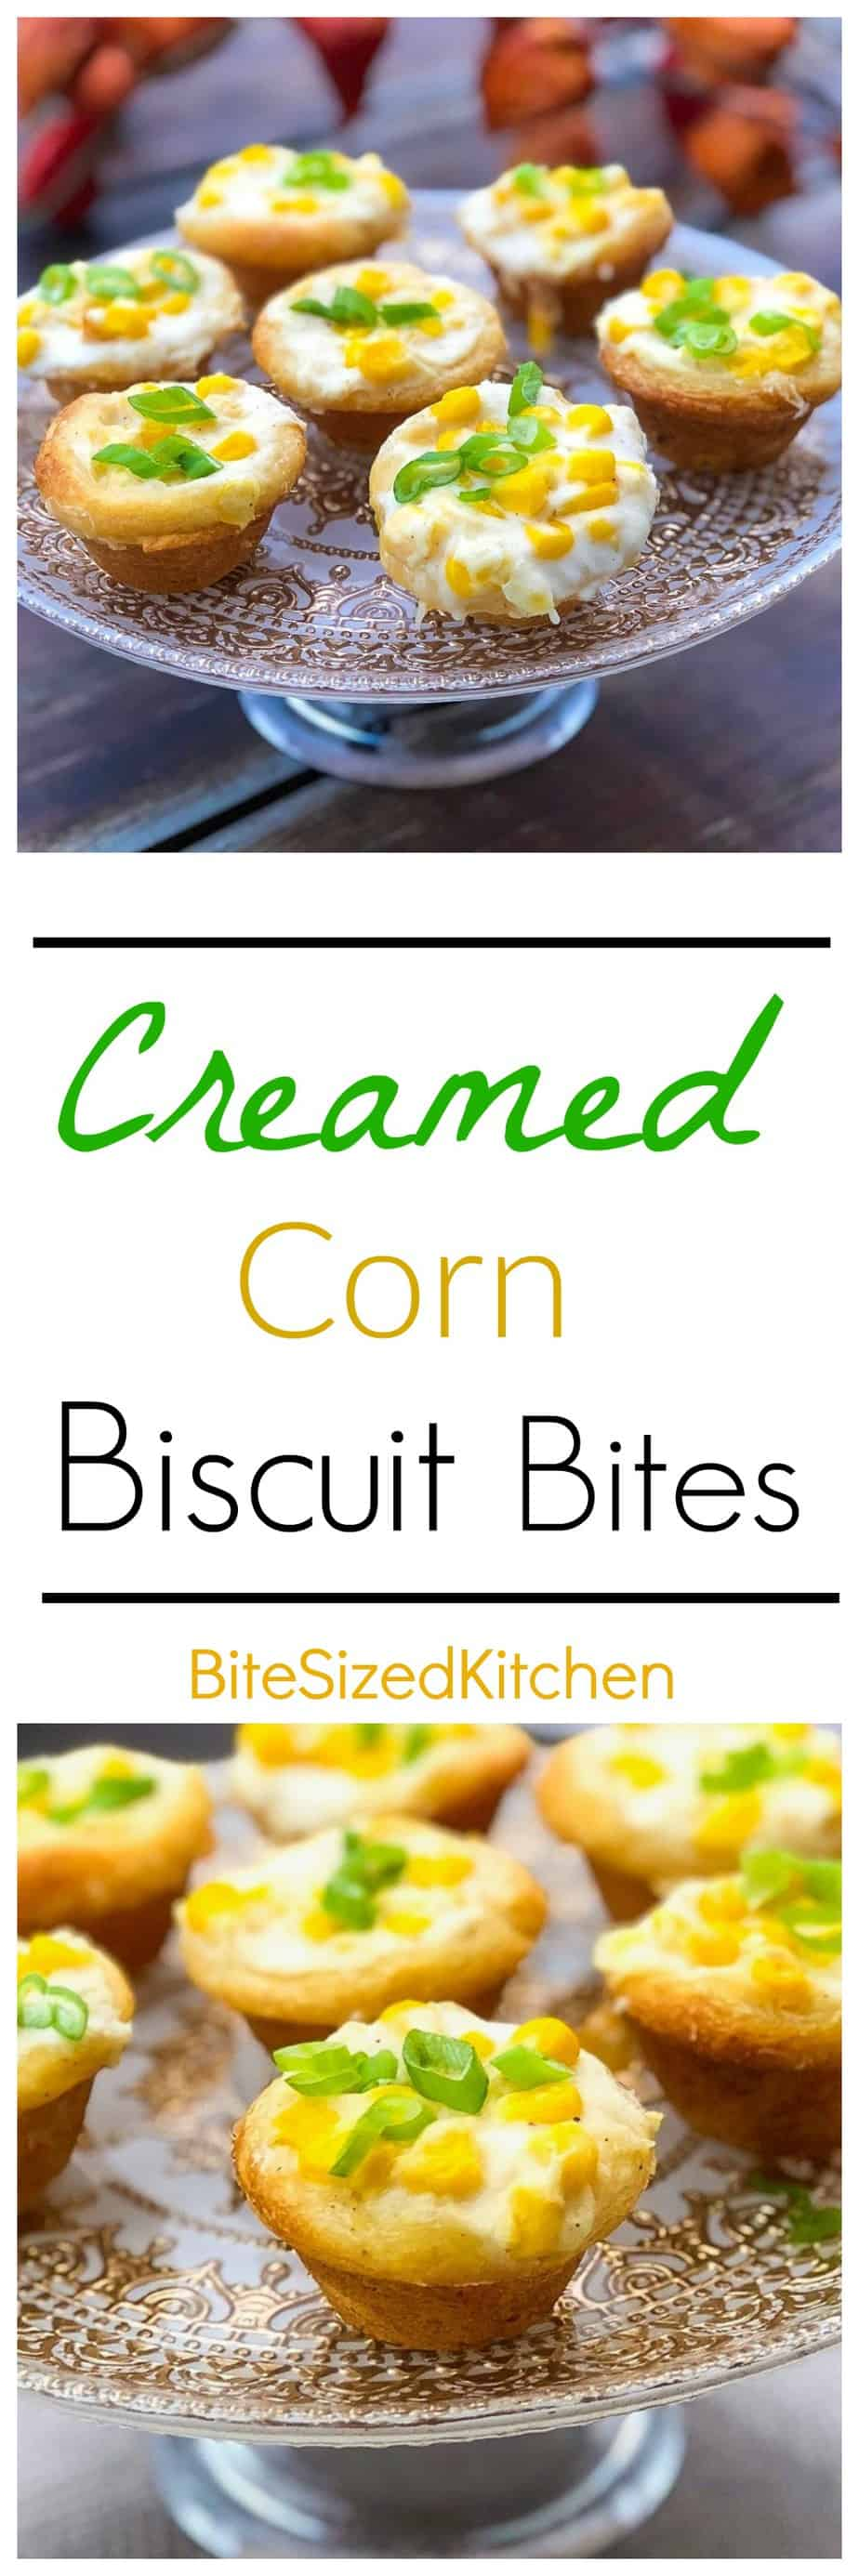 Creamed Corn Biscuit Bites made with Pillsbury biscuit dough. Perfect appetizer for a crowd! Easy and bite-sized!